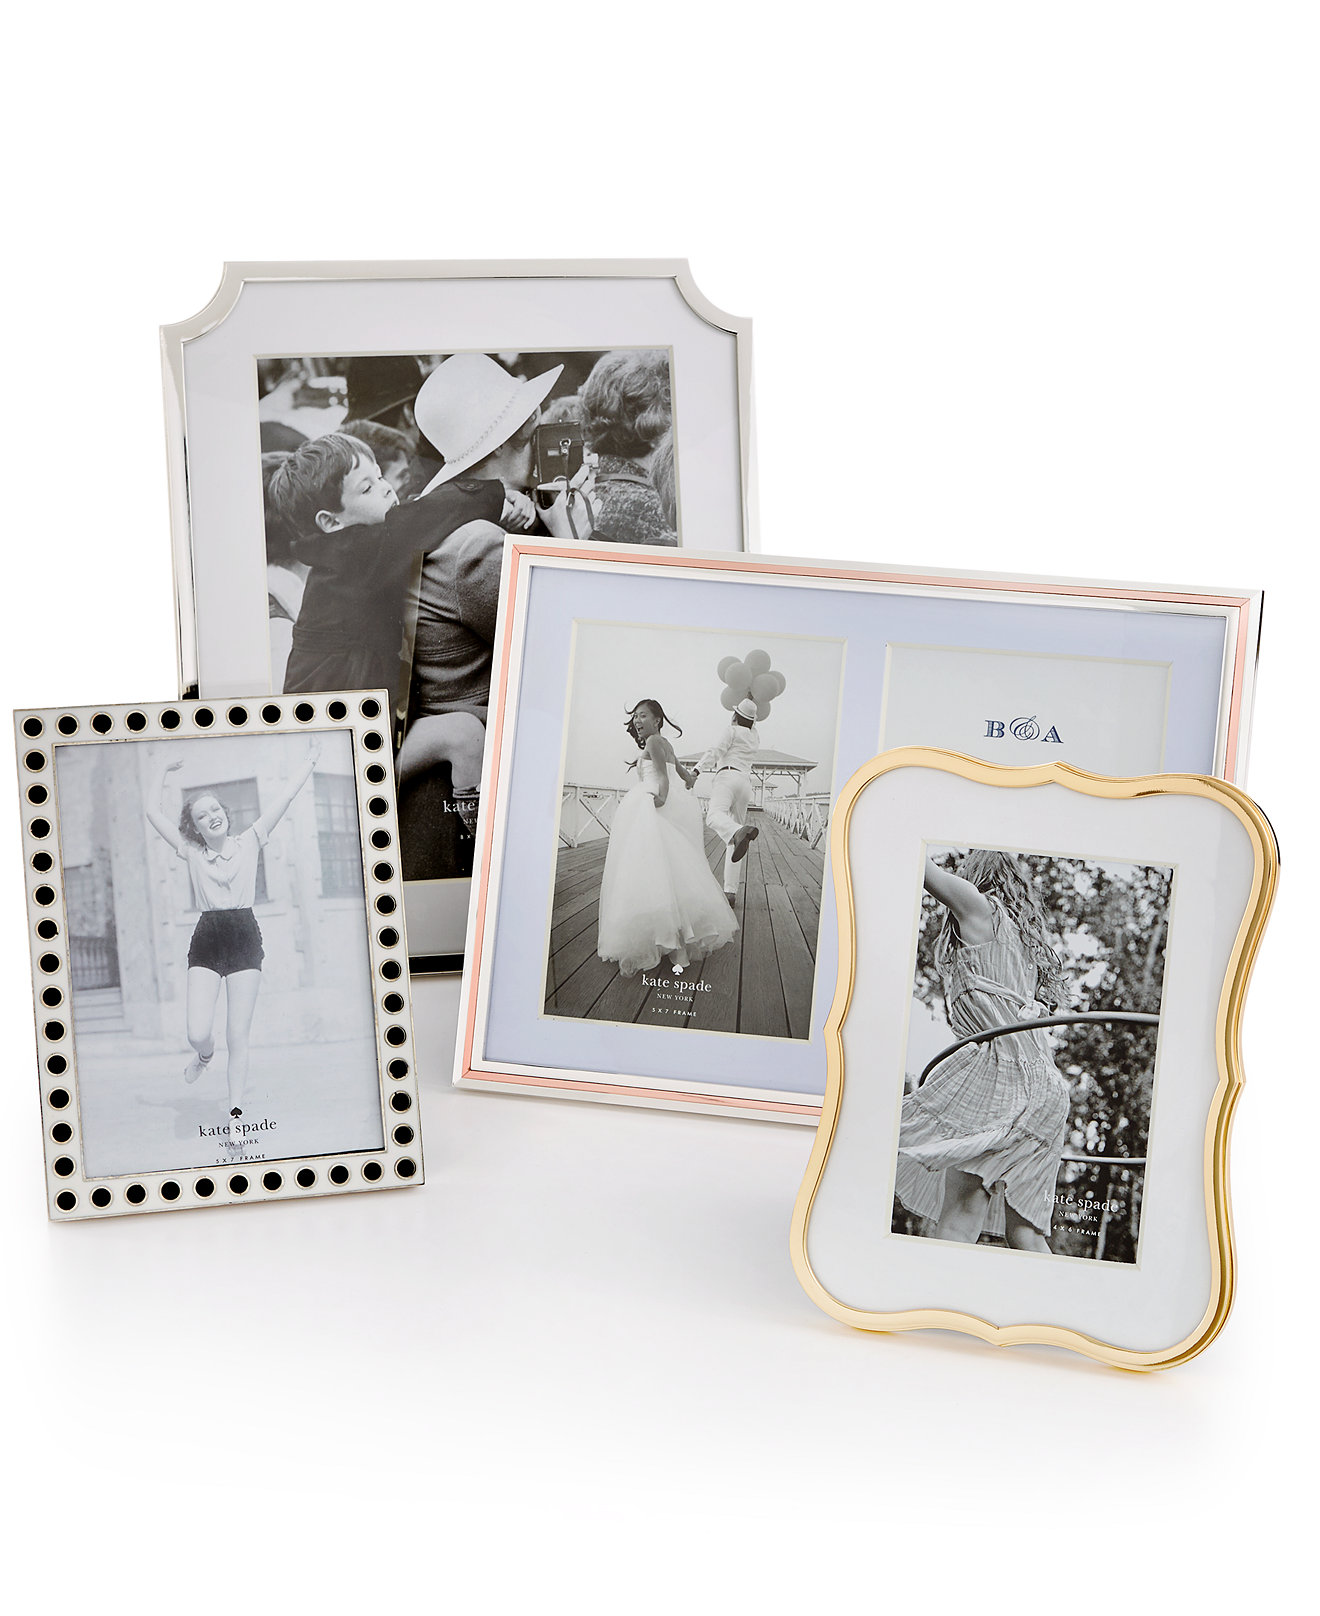 personally picture frames are some of my favorite decor items we have in our house kate spade makes some of my favorite frames